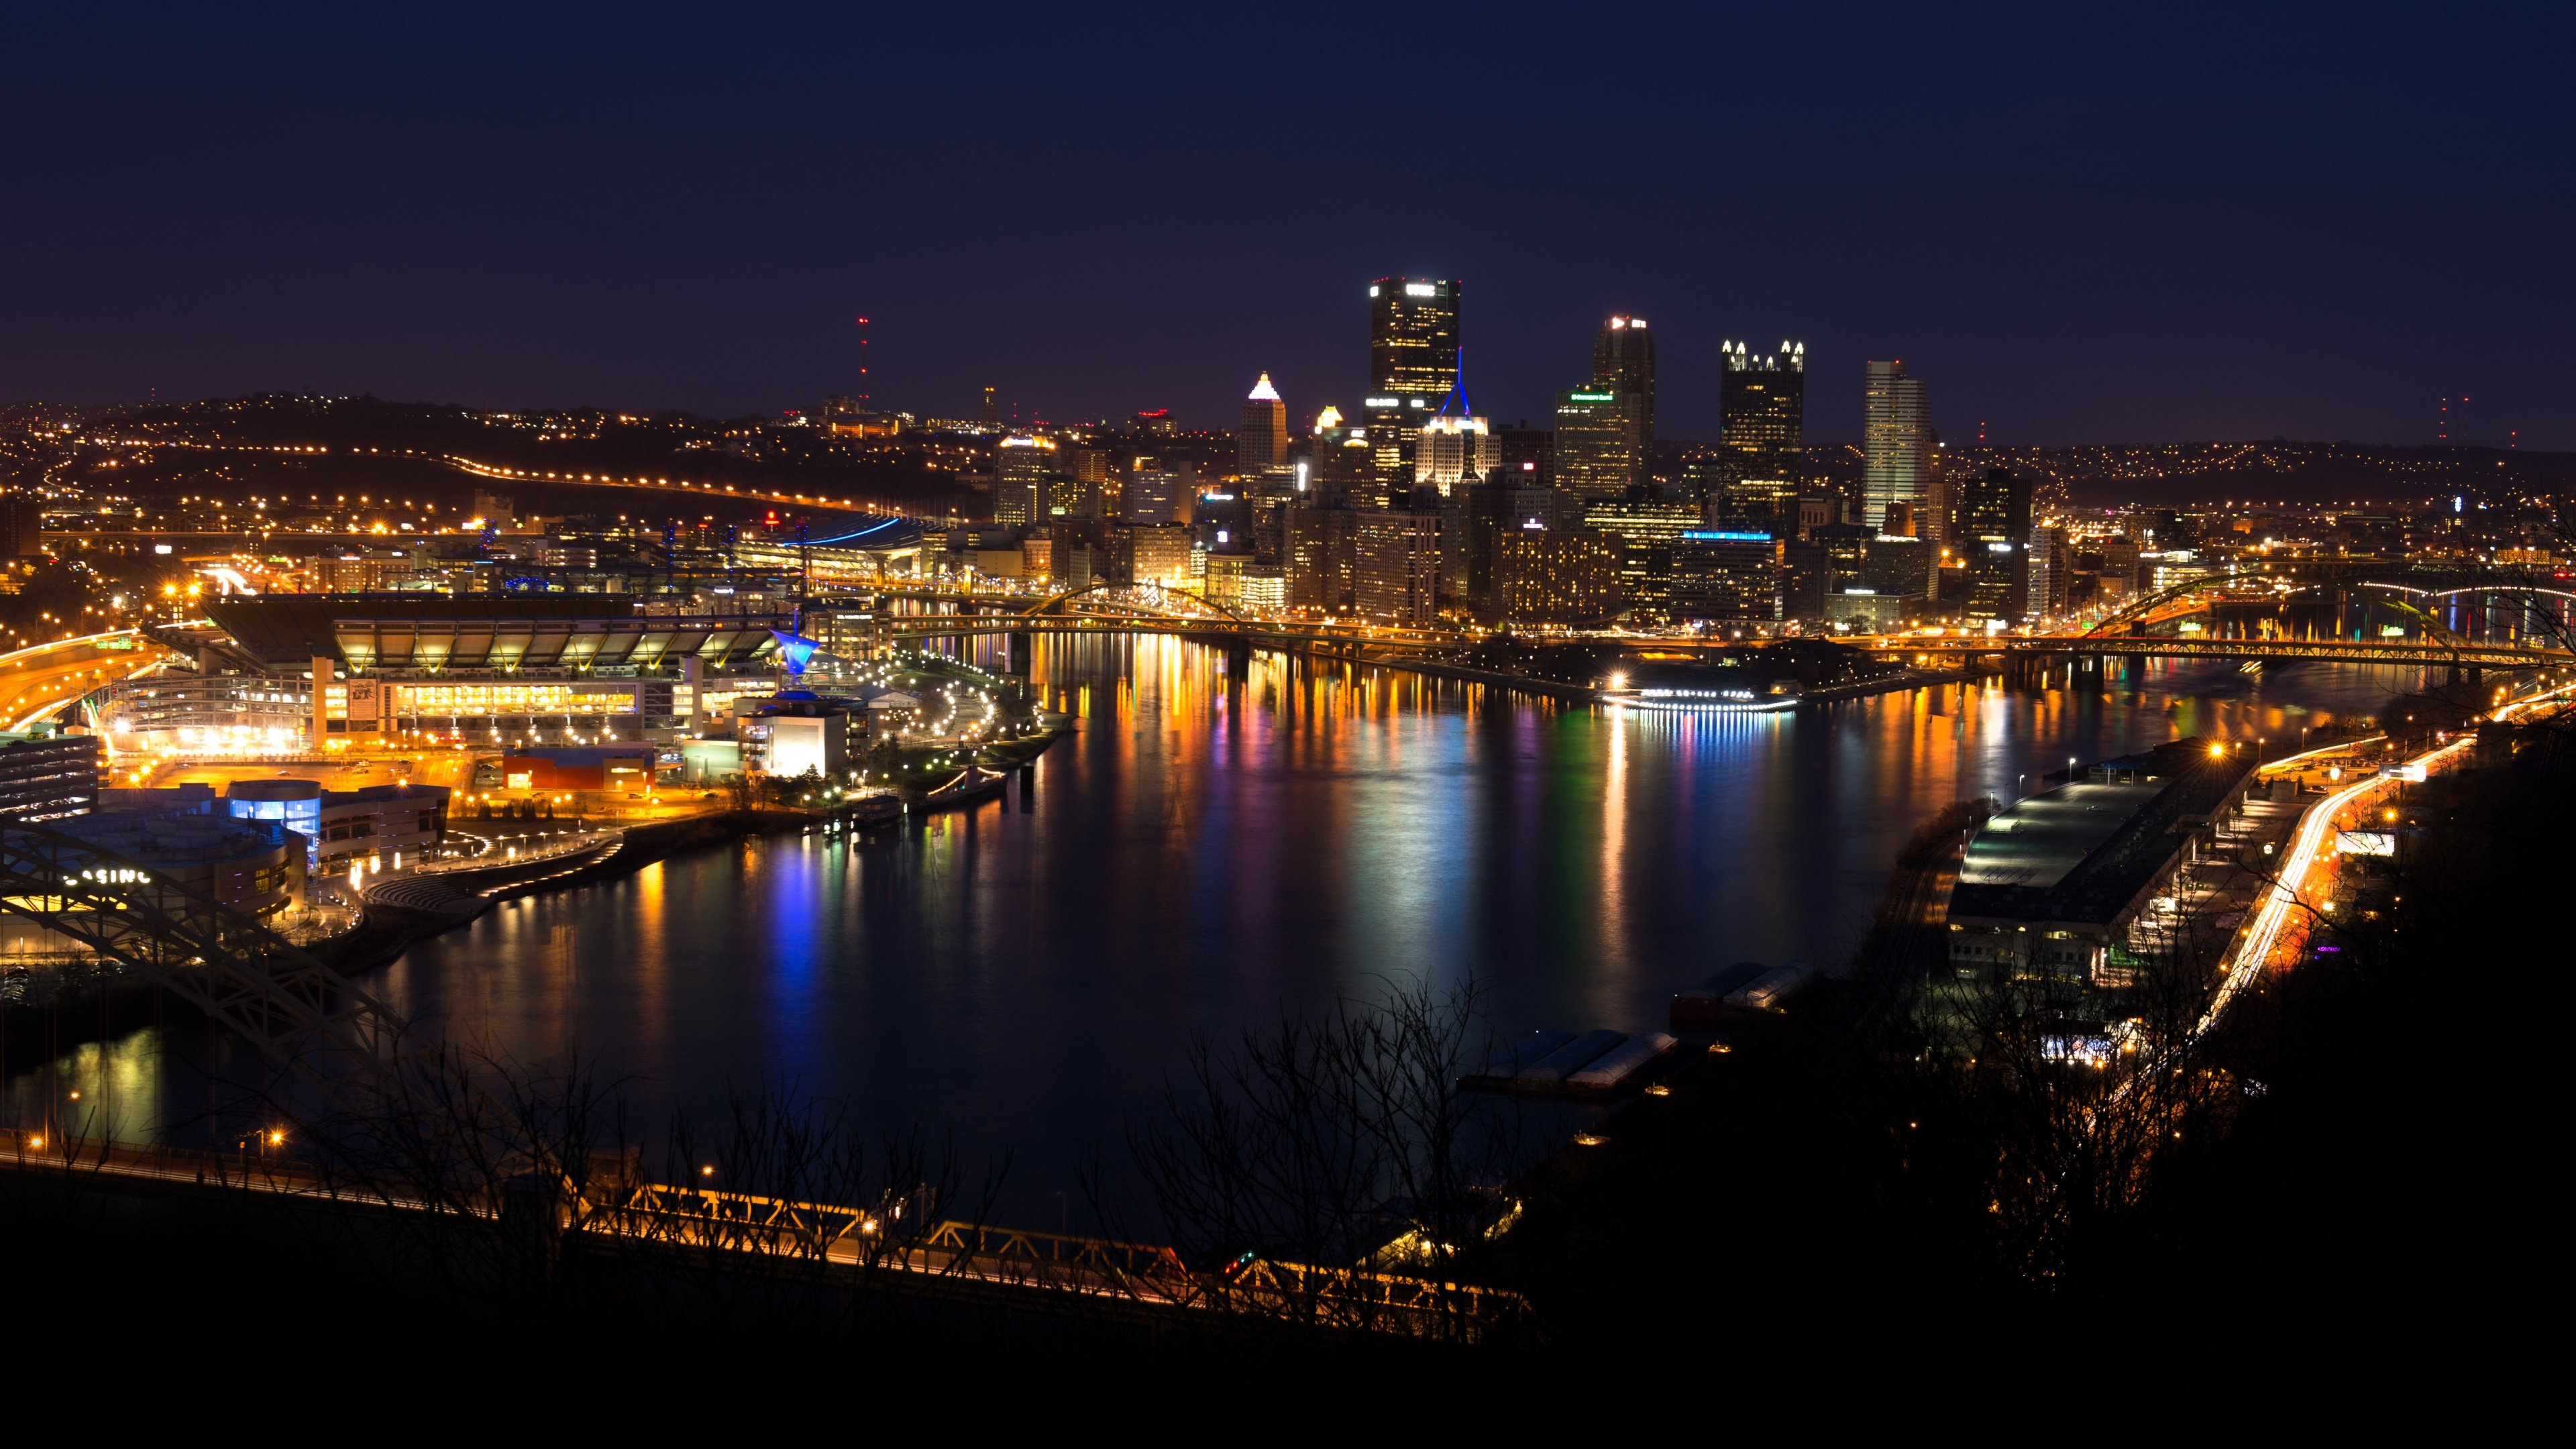 High Resolution Pittsburgh Ultra Hd 4k Wallpaper Id 486522 For Pc